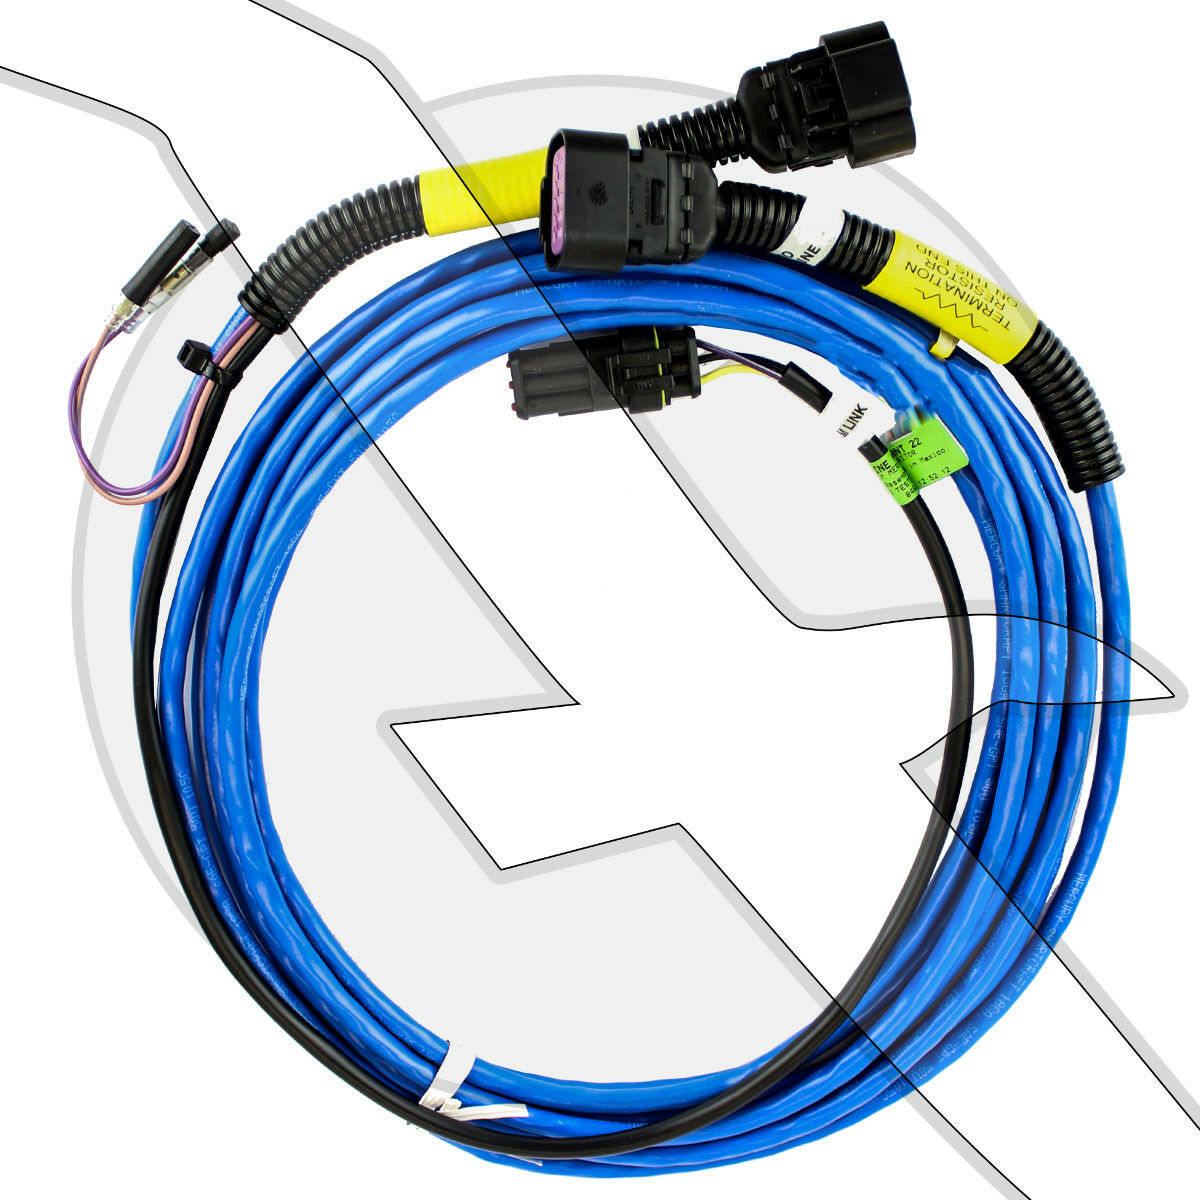 Mercury Marine Wire Harness Wiring Library Sportjet Jet Drive Smarcraft Monitor 84 879982t20 1 Of 1only